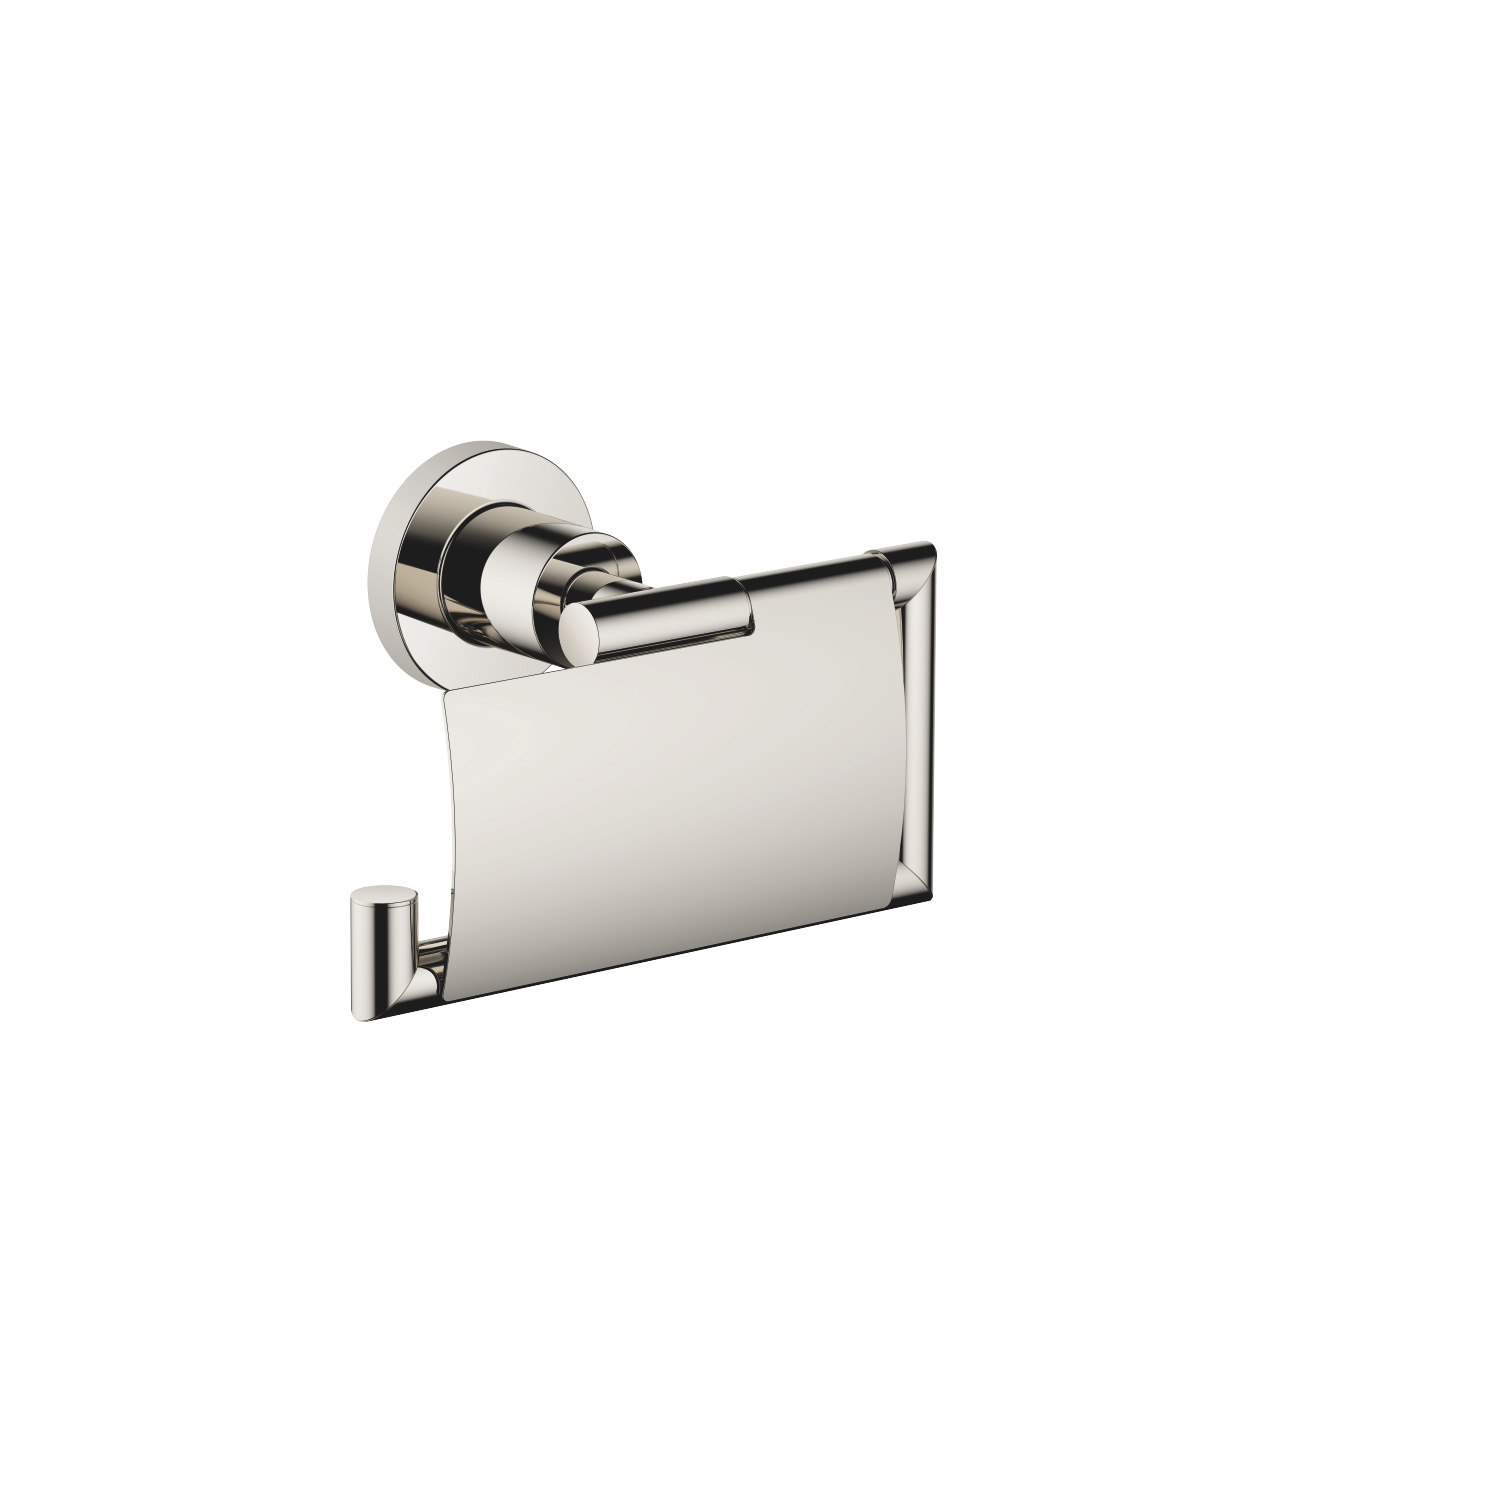 Tissue holder with cover - platinum